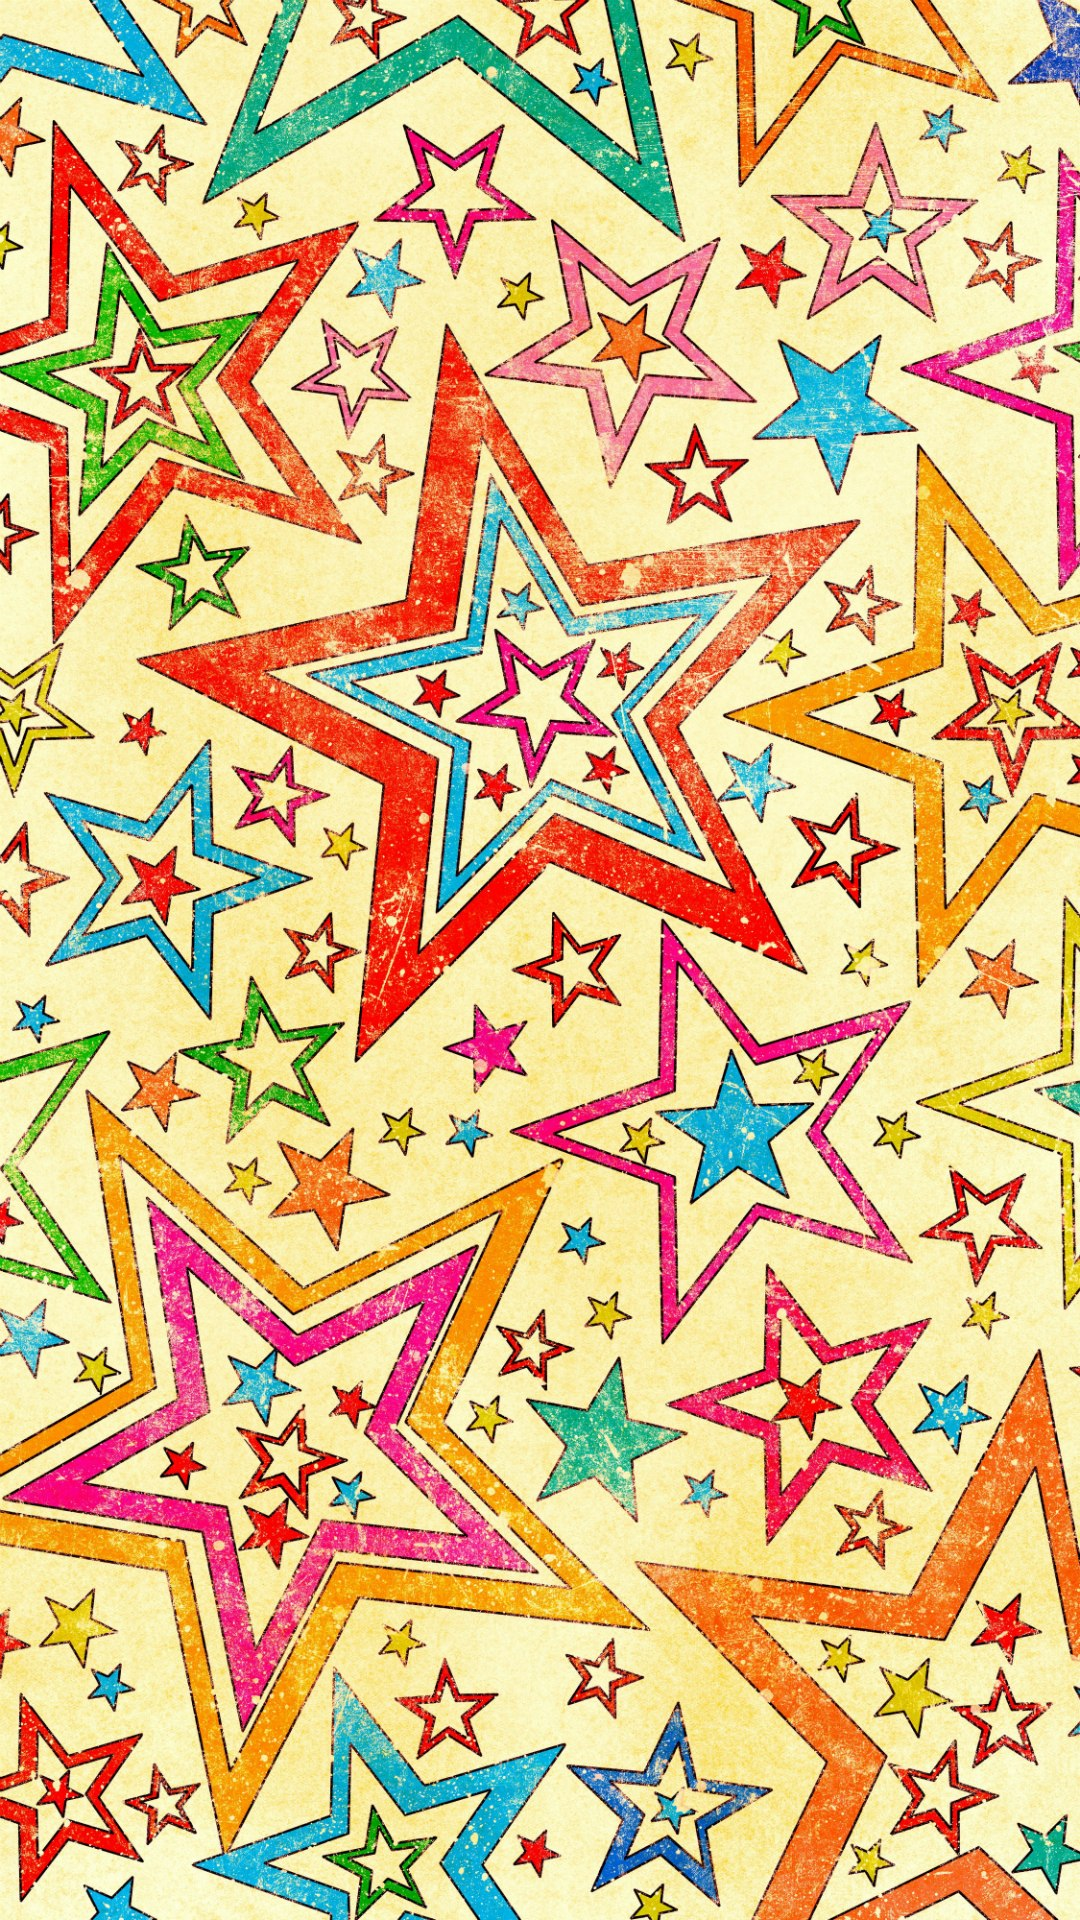 stars colorful background 1080x1920